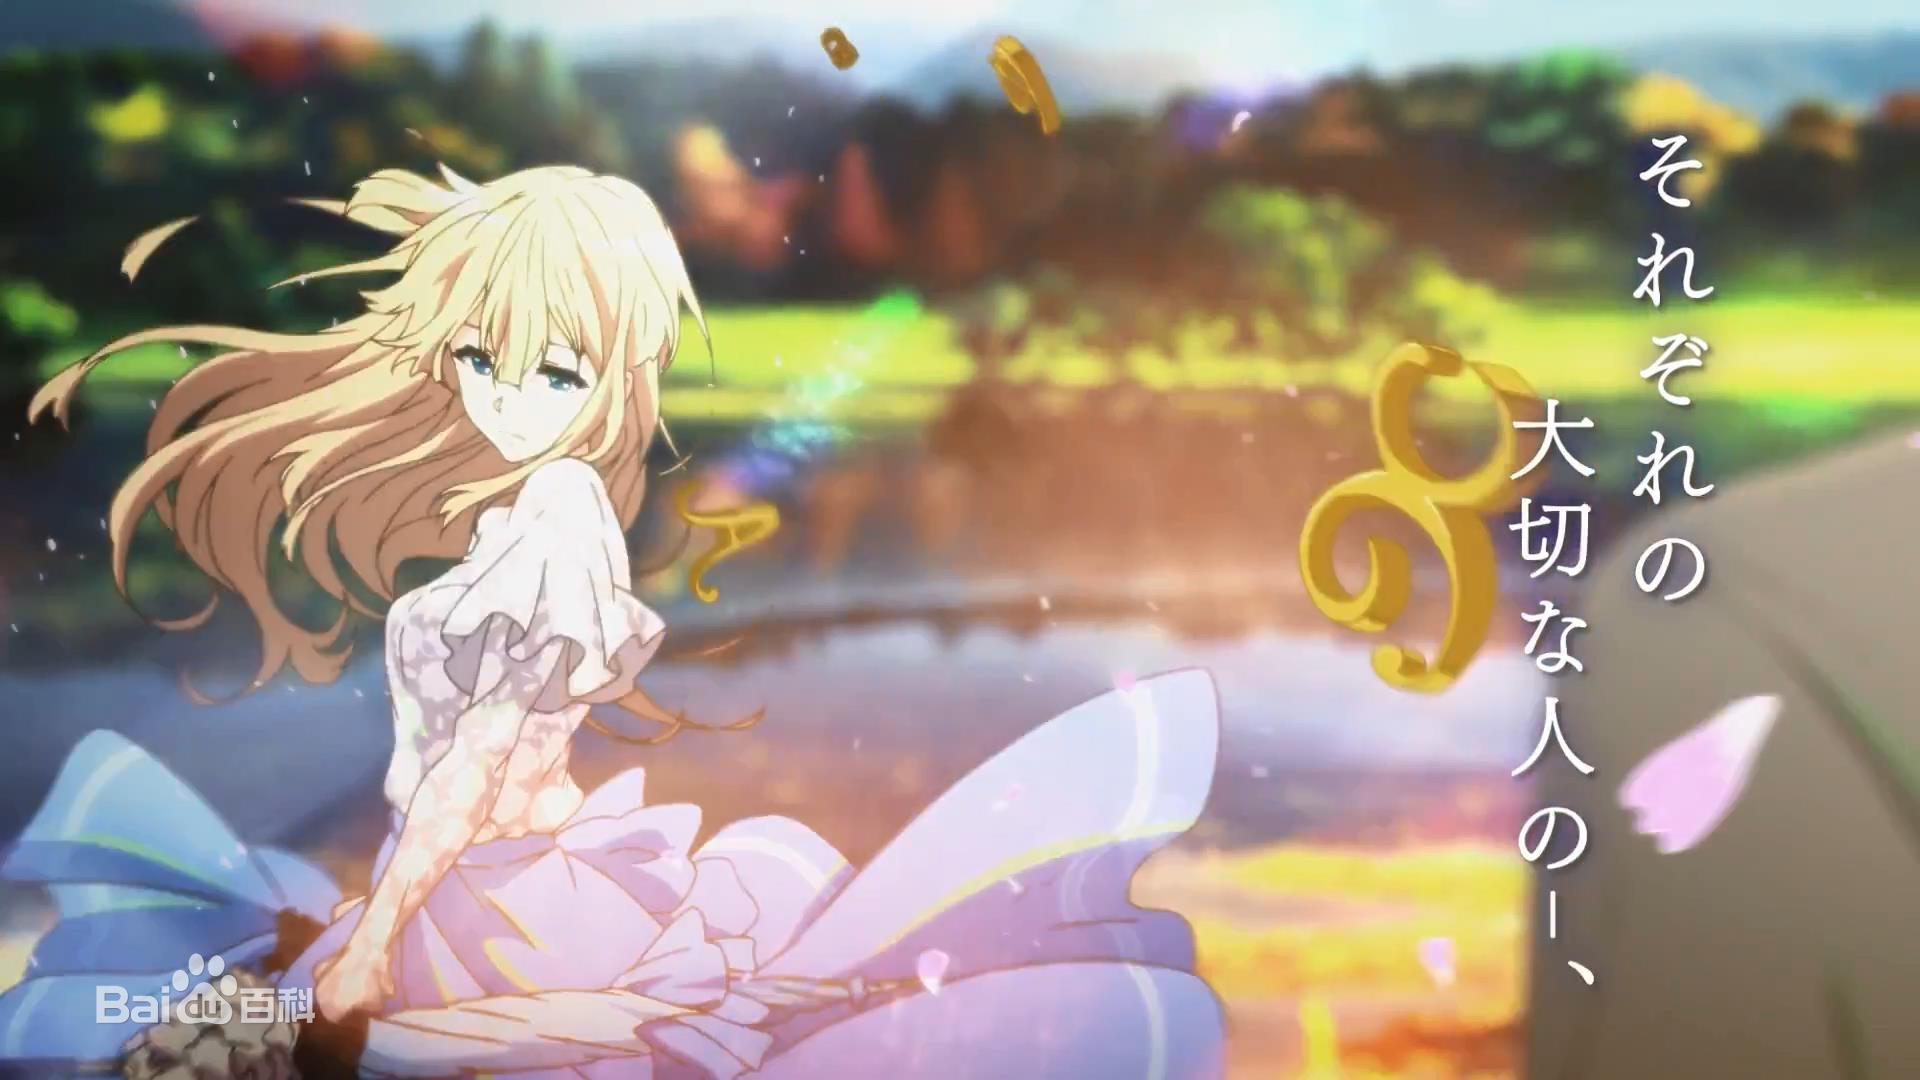 C8ea15ce36d3d53949826e1c3d87e950342ab0b6 besides Dusseldorf Front View Architecture Germany besides 2747 likewise Ffg Black Mage further Ffg White Mage. on anime of light